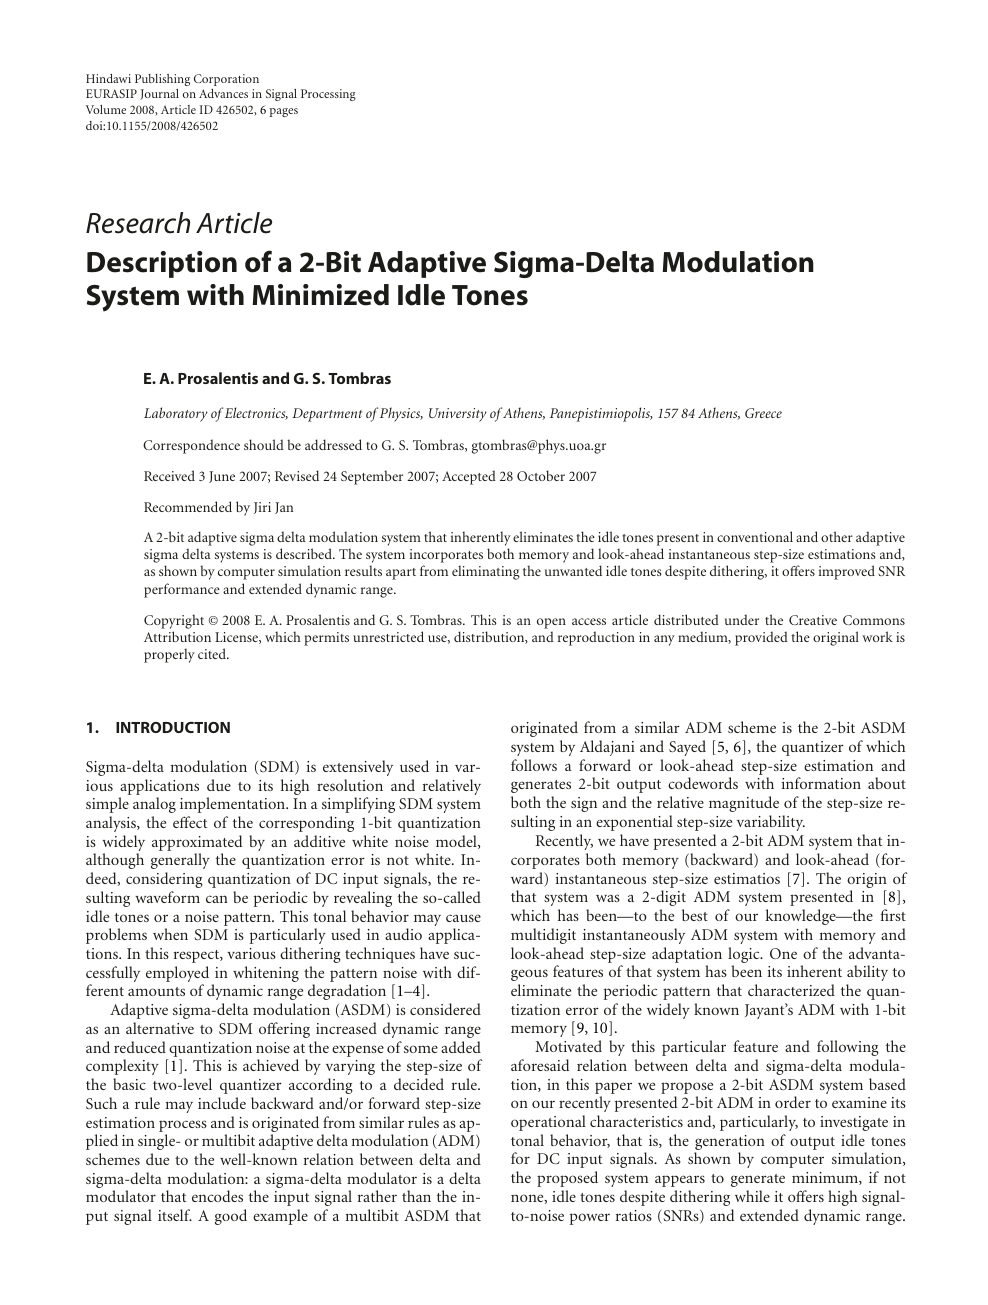 Description of a 2-Bit Adaptive Sigma-Delta Modulation System with